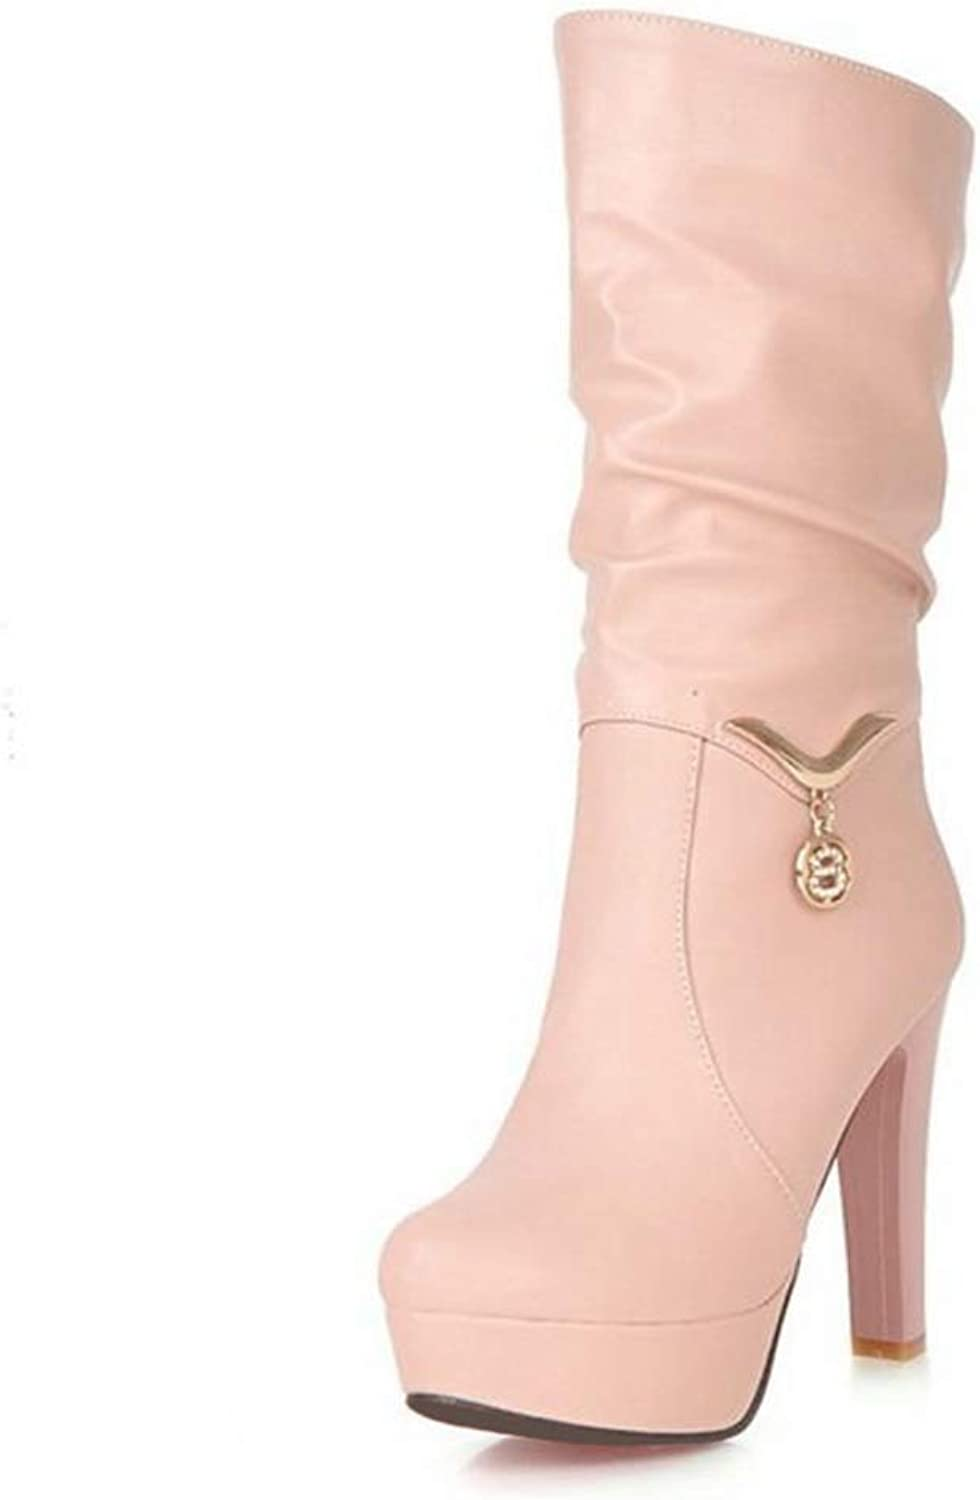 Hoxekle Woman Mid Calf Boots Warm Slip On High Square Heel Round Toe Boots Buckle Thick Platform Lady Prom Elegant shoes